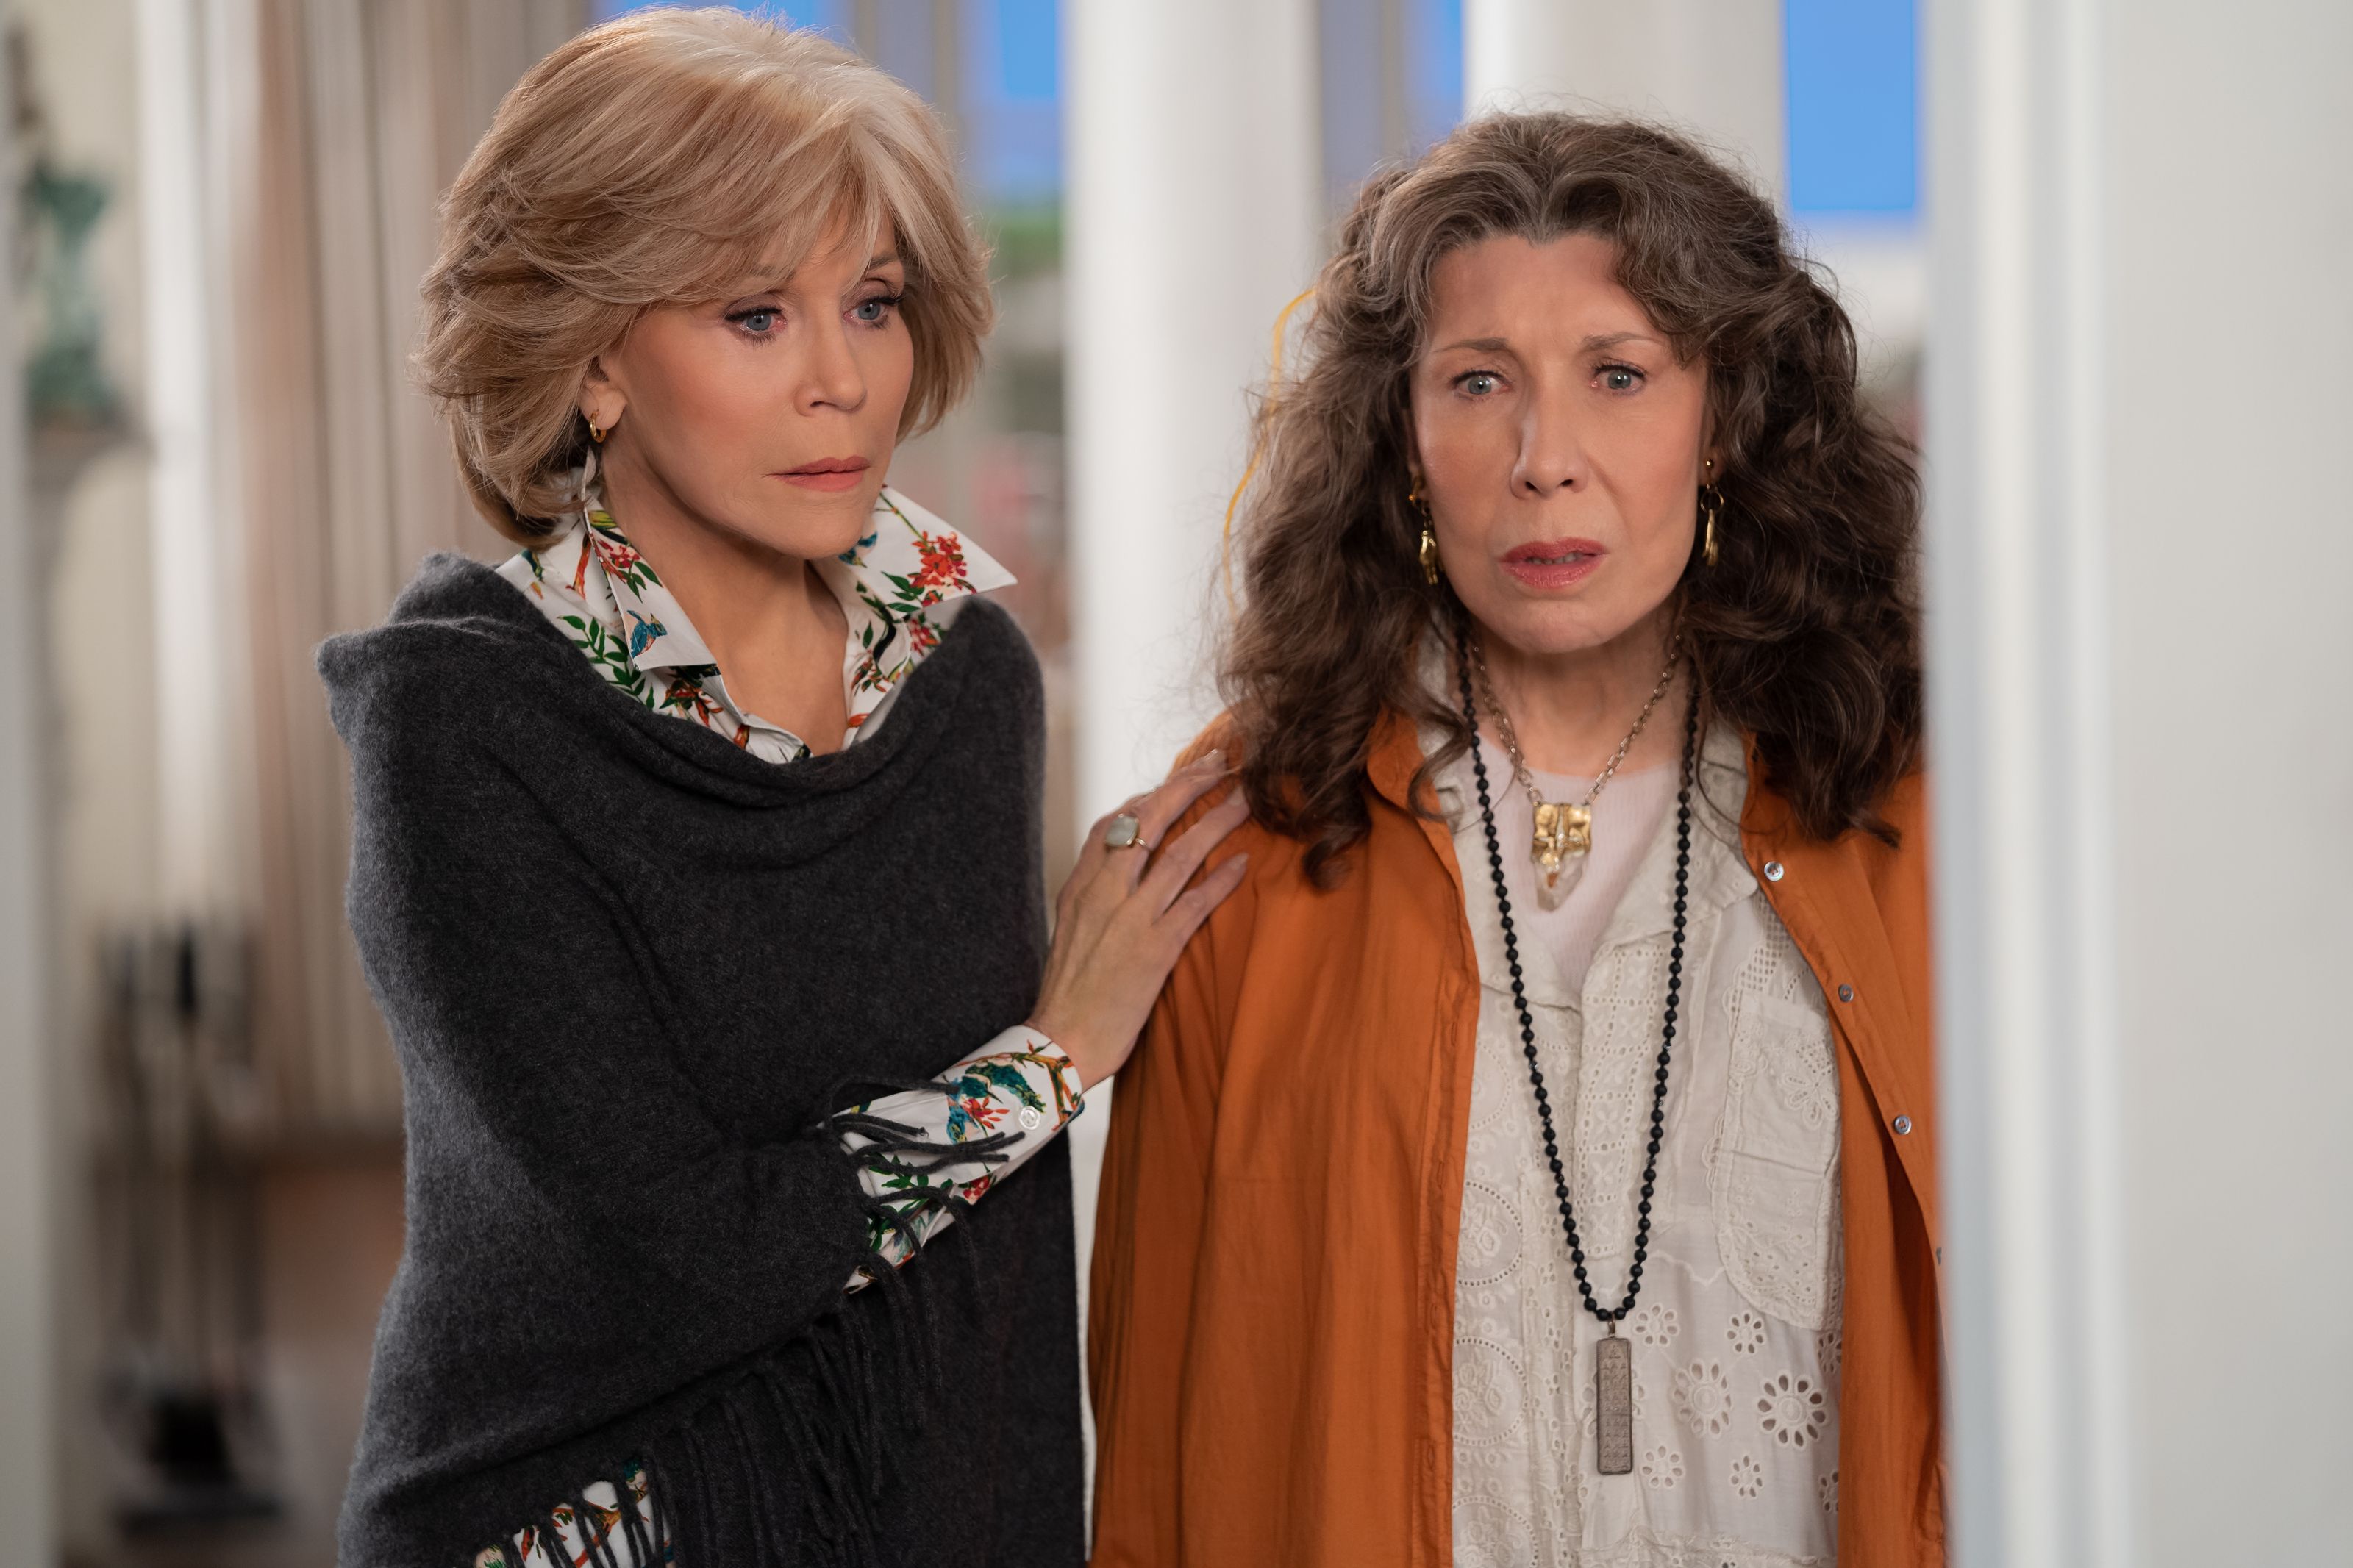 When will the rest of Grace and Frankie season 7 come out?